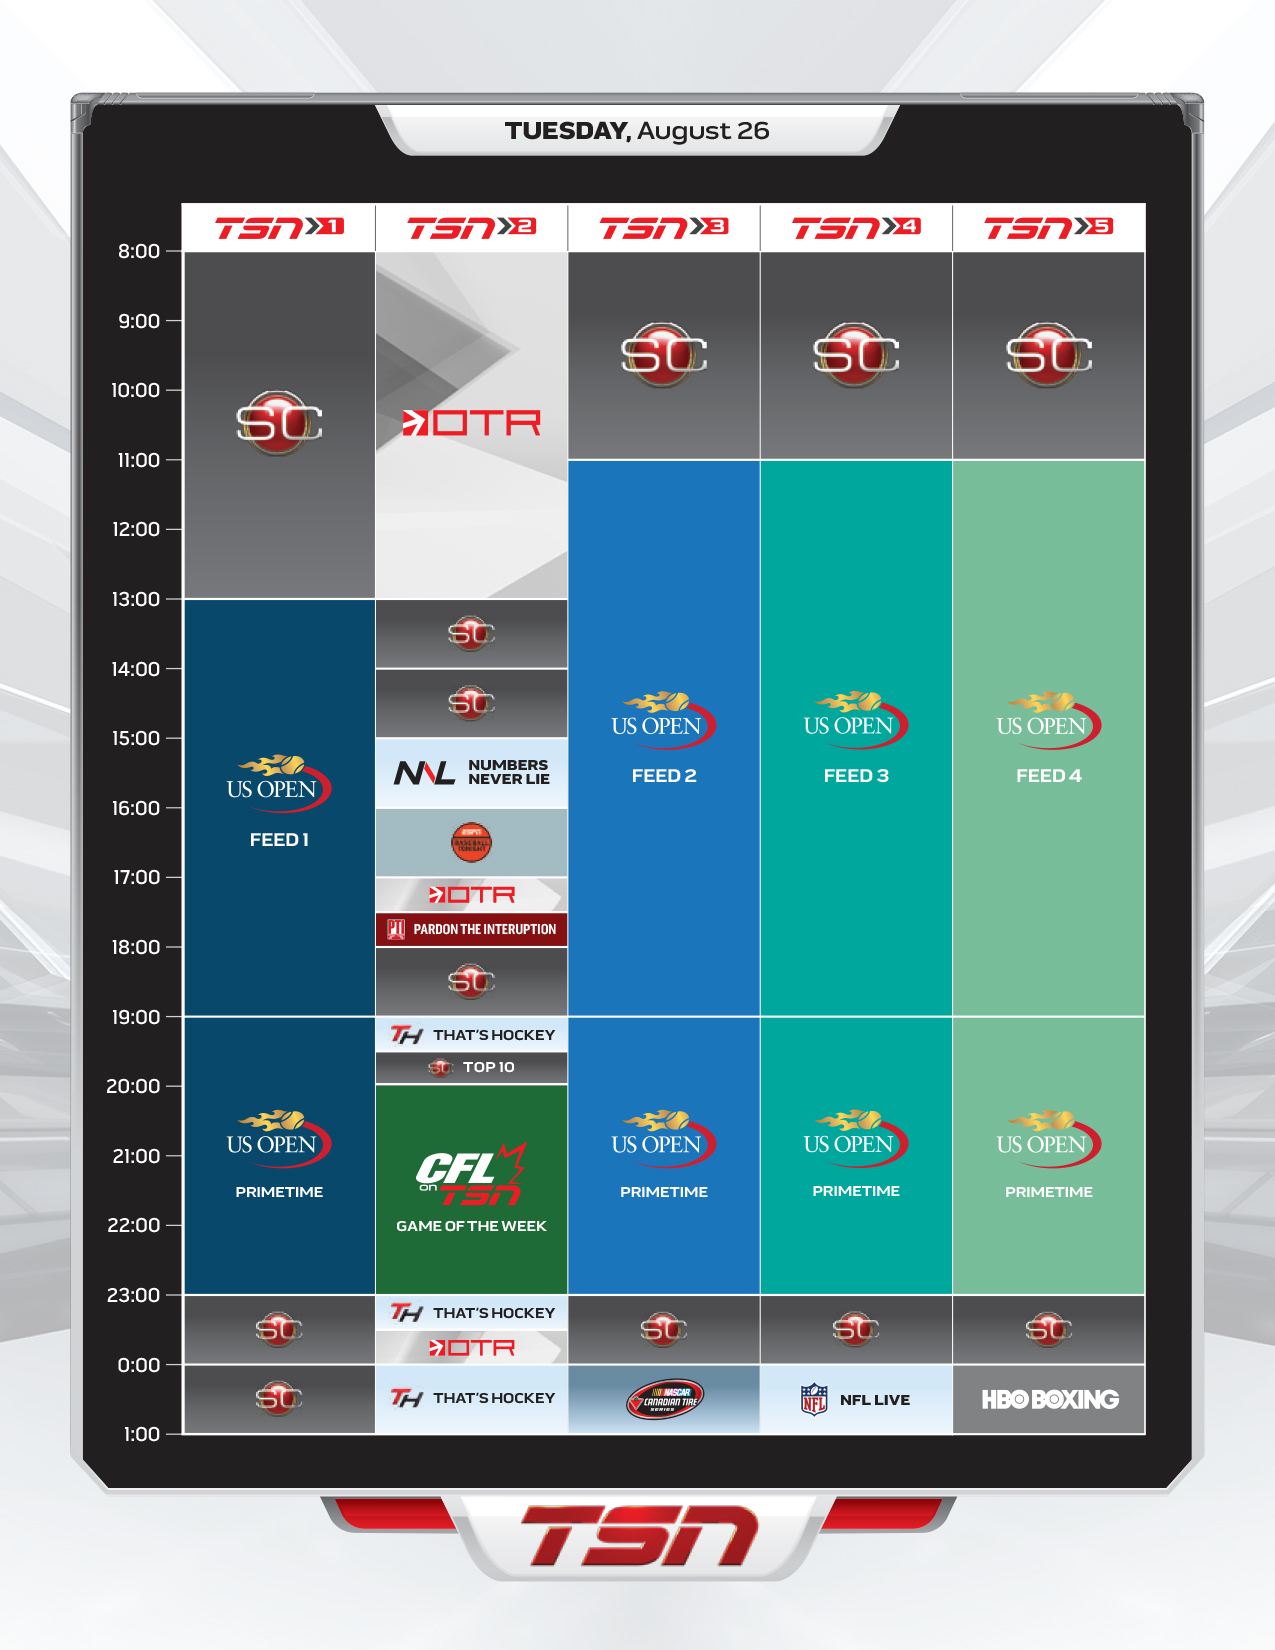 TSN New Channel Placement and First Week Schedule – A Rouge